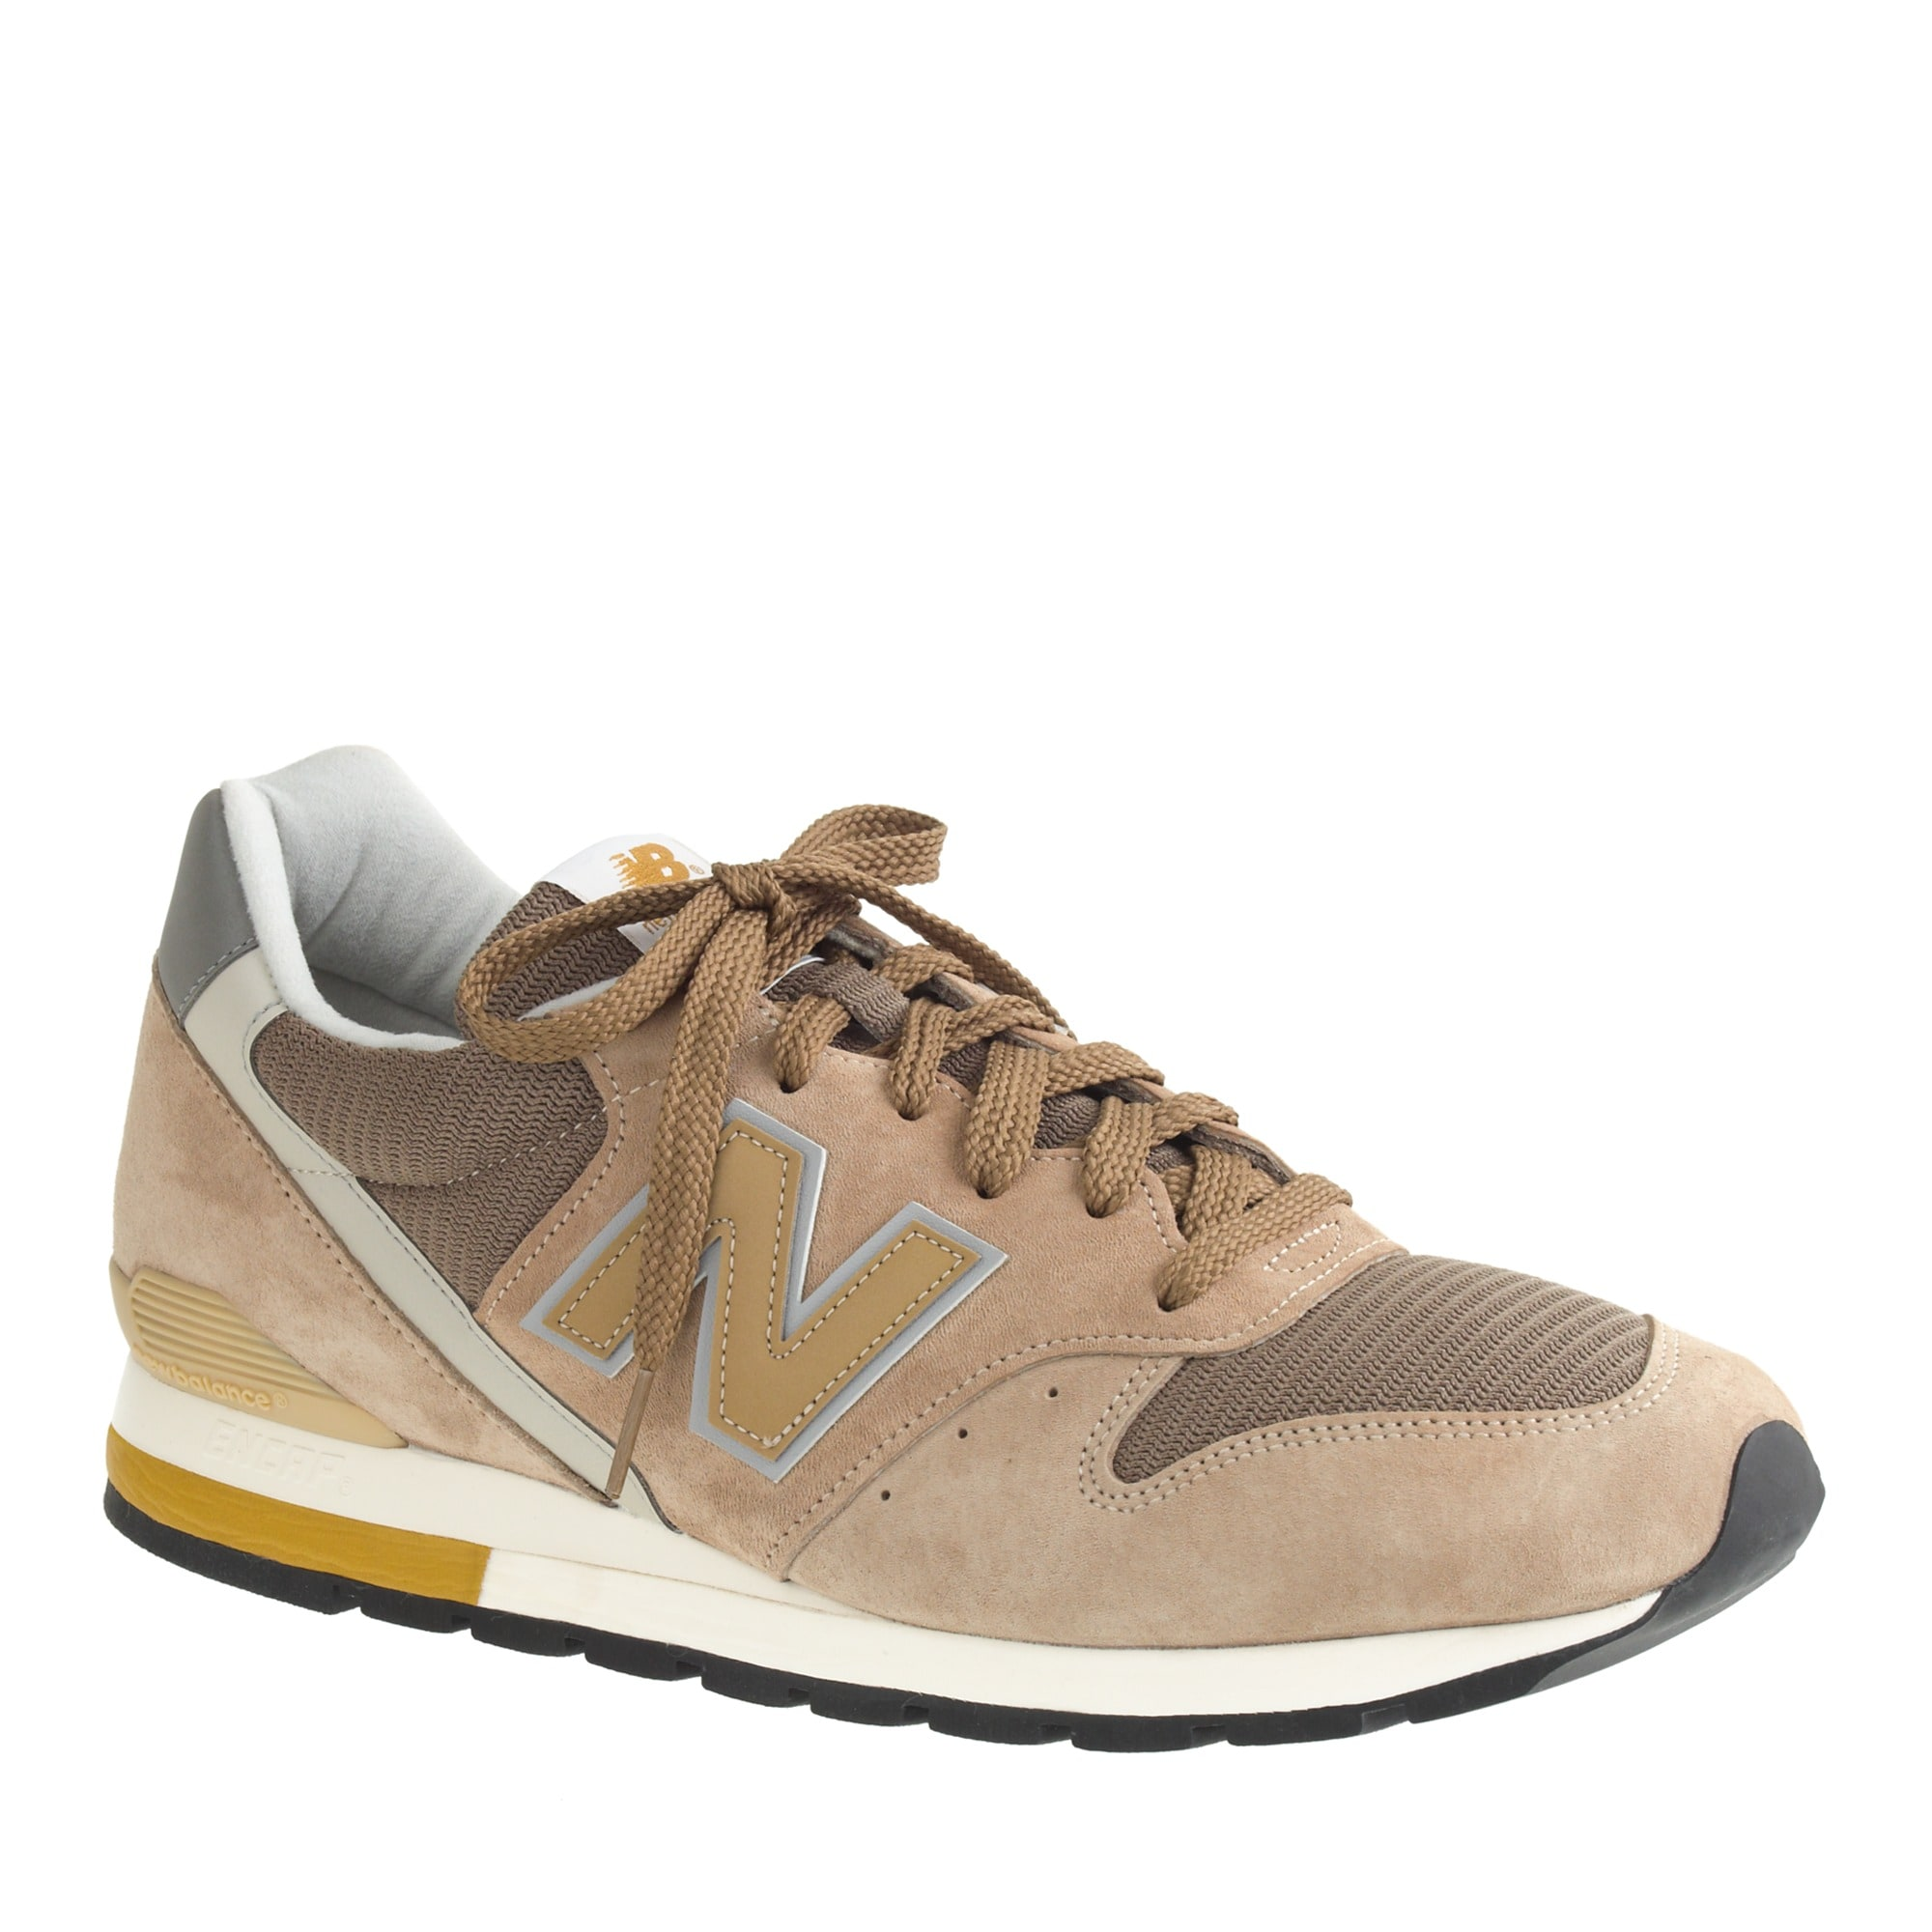 mens New Balance® for J.Crew 996 sneakers